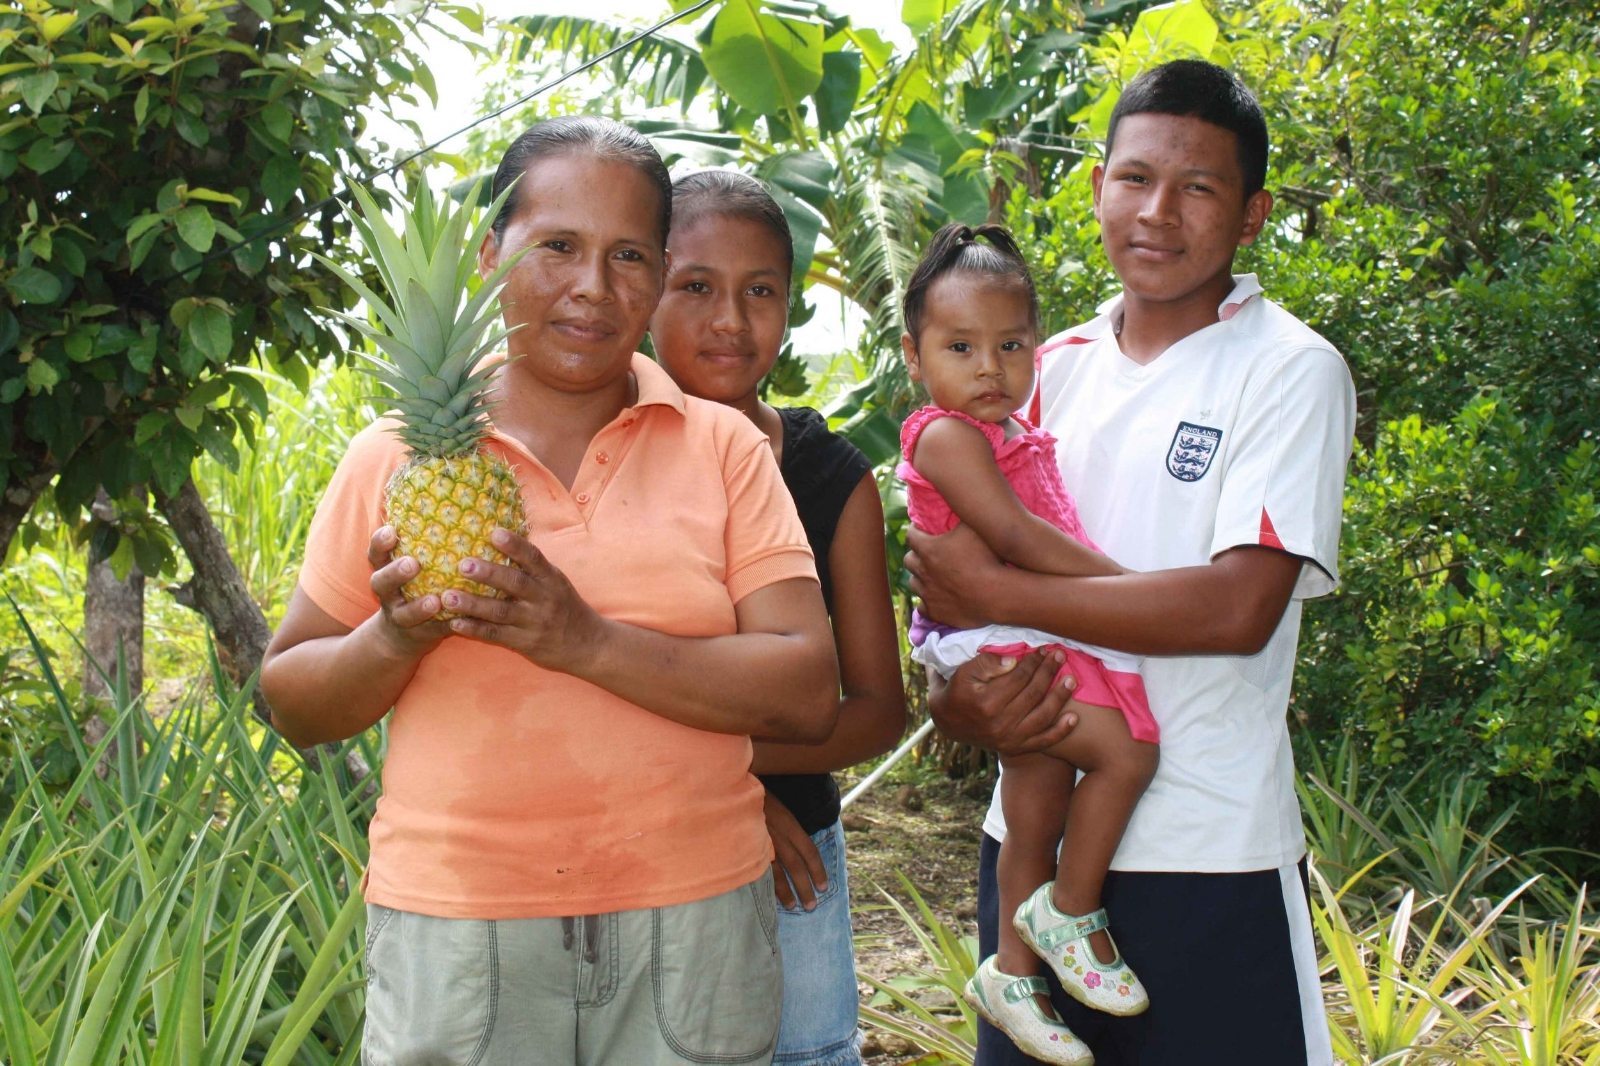 Sustainable farming was the solution to Migdalia's family's health and happiness.